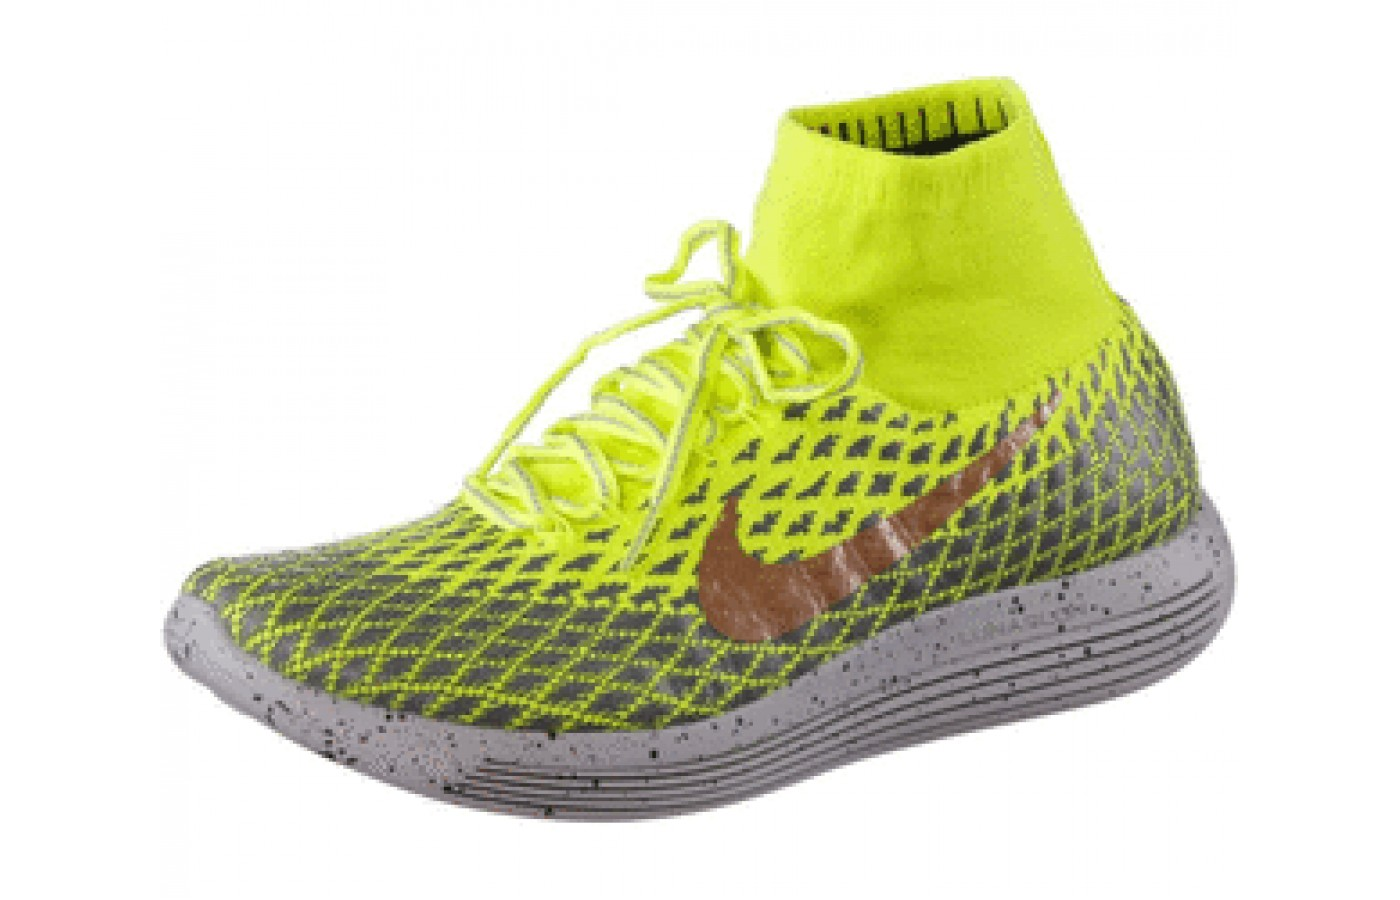 e8e629652f6f8 Side Angled view of the Nike LunarEpic FlyKnit Shield ...